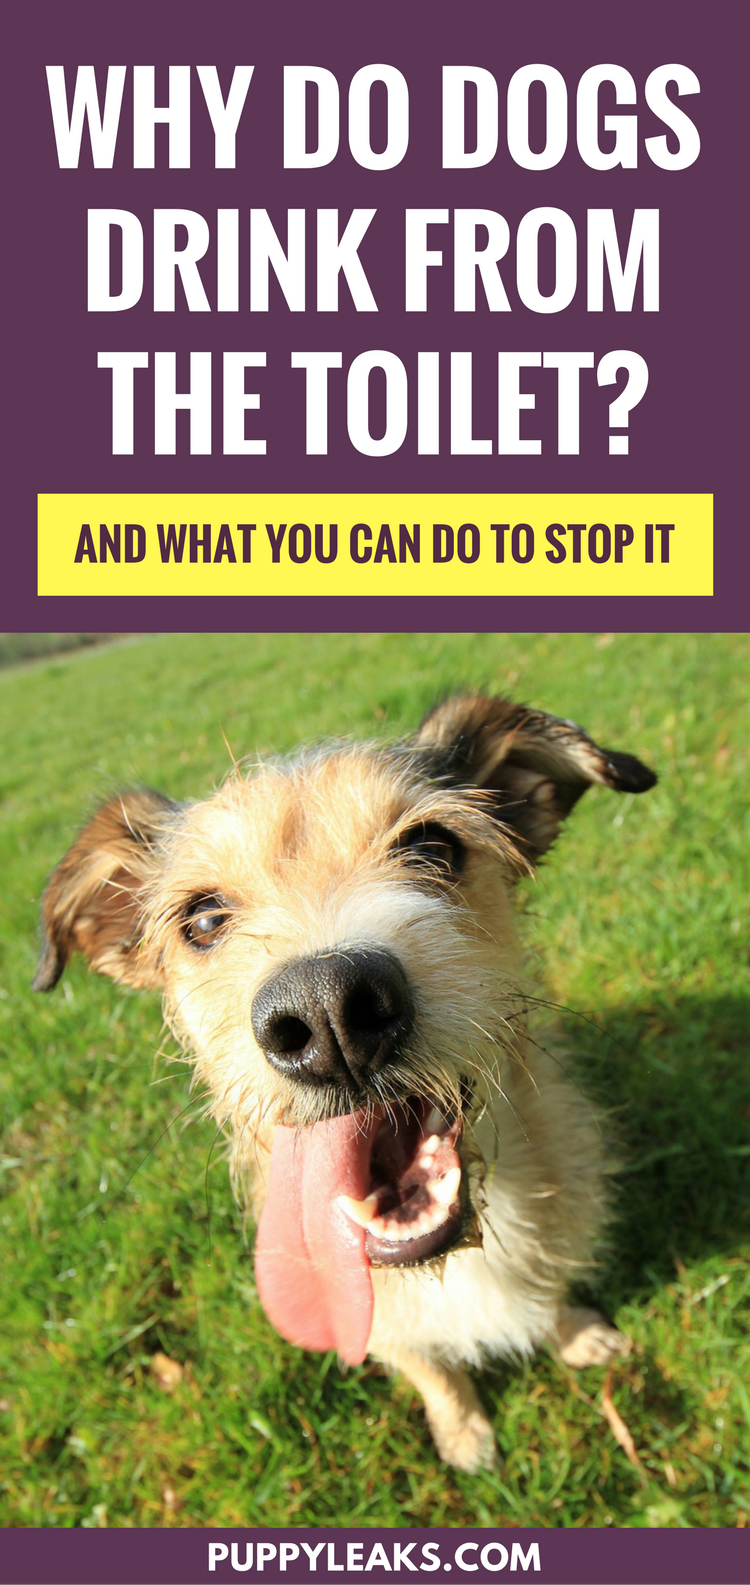 Why Do Dogs Drink From the Toilet? (and what you can do to stop it)